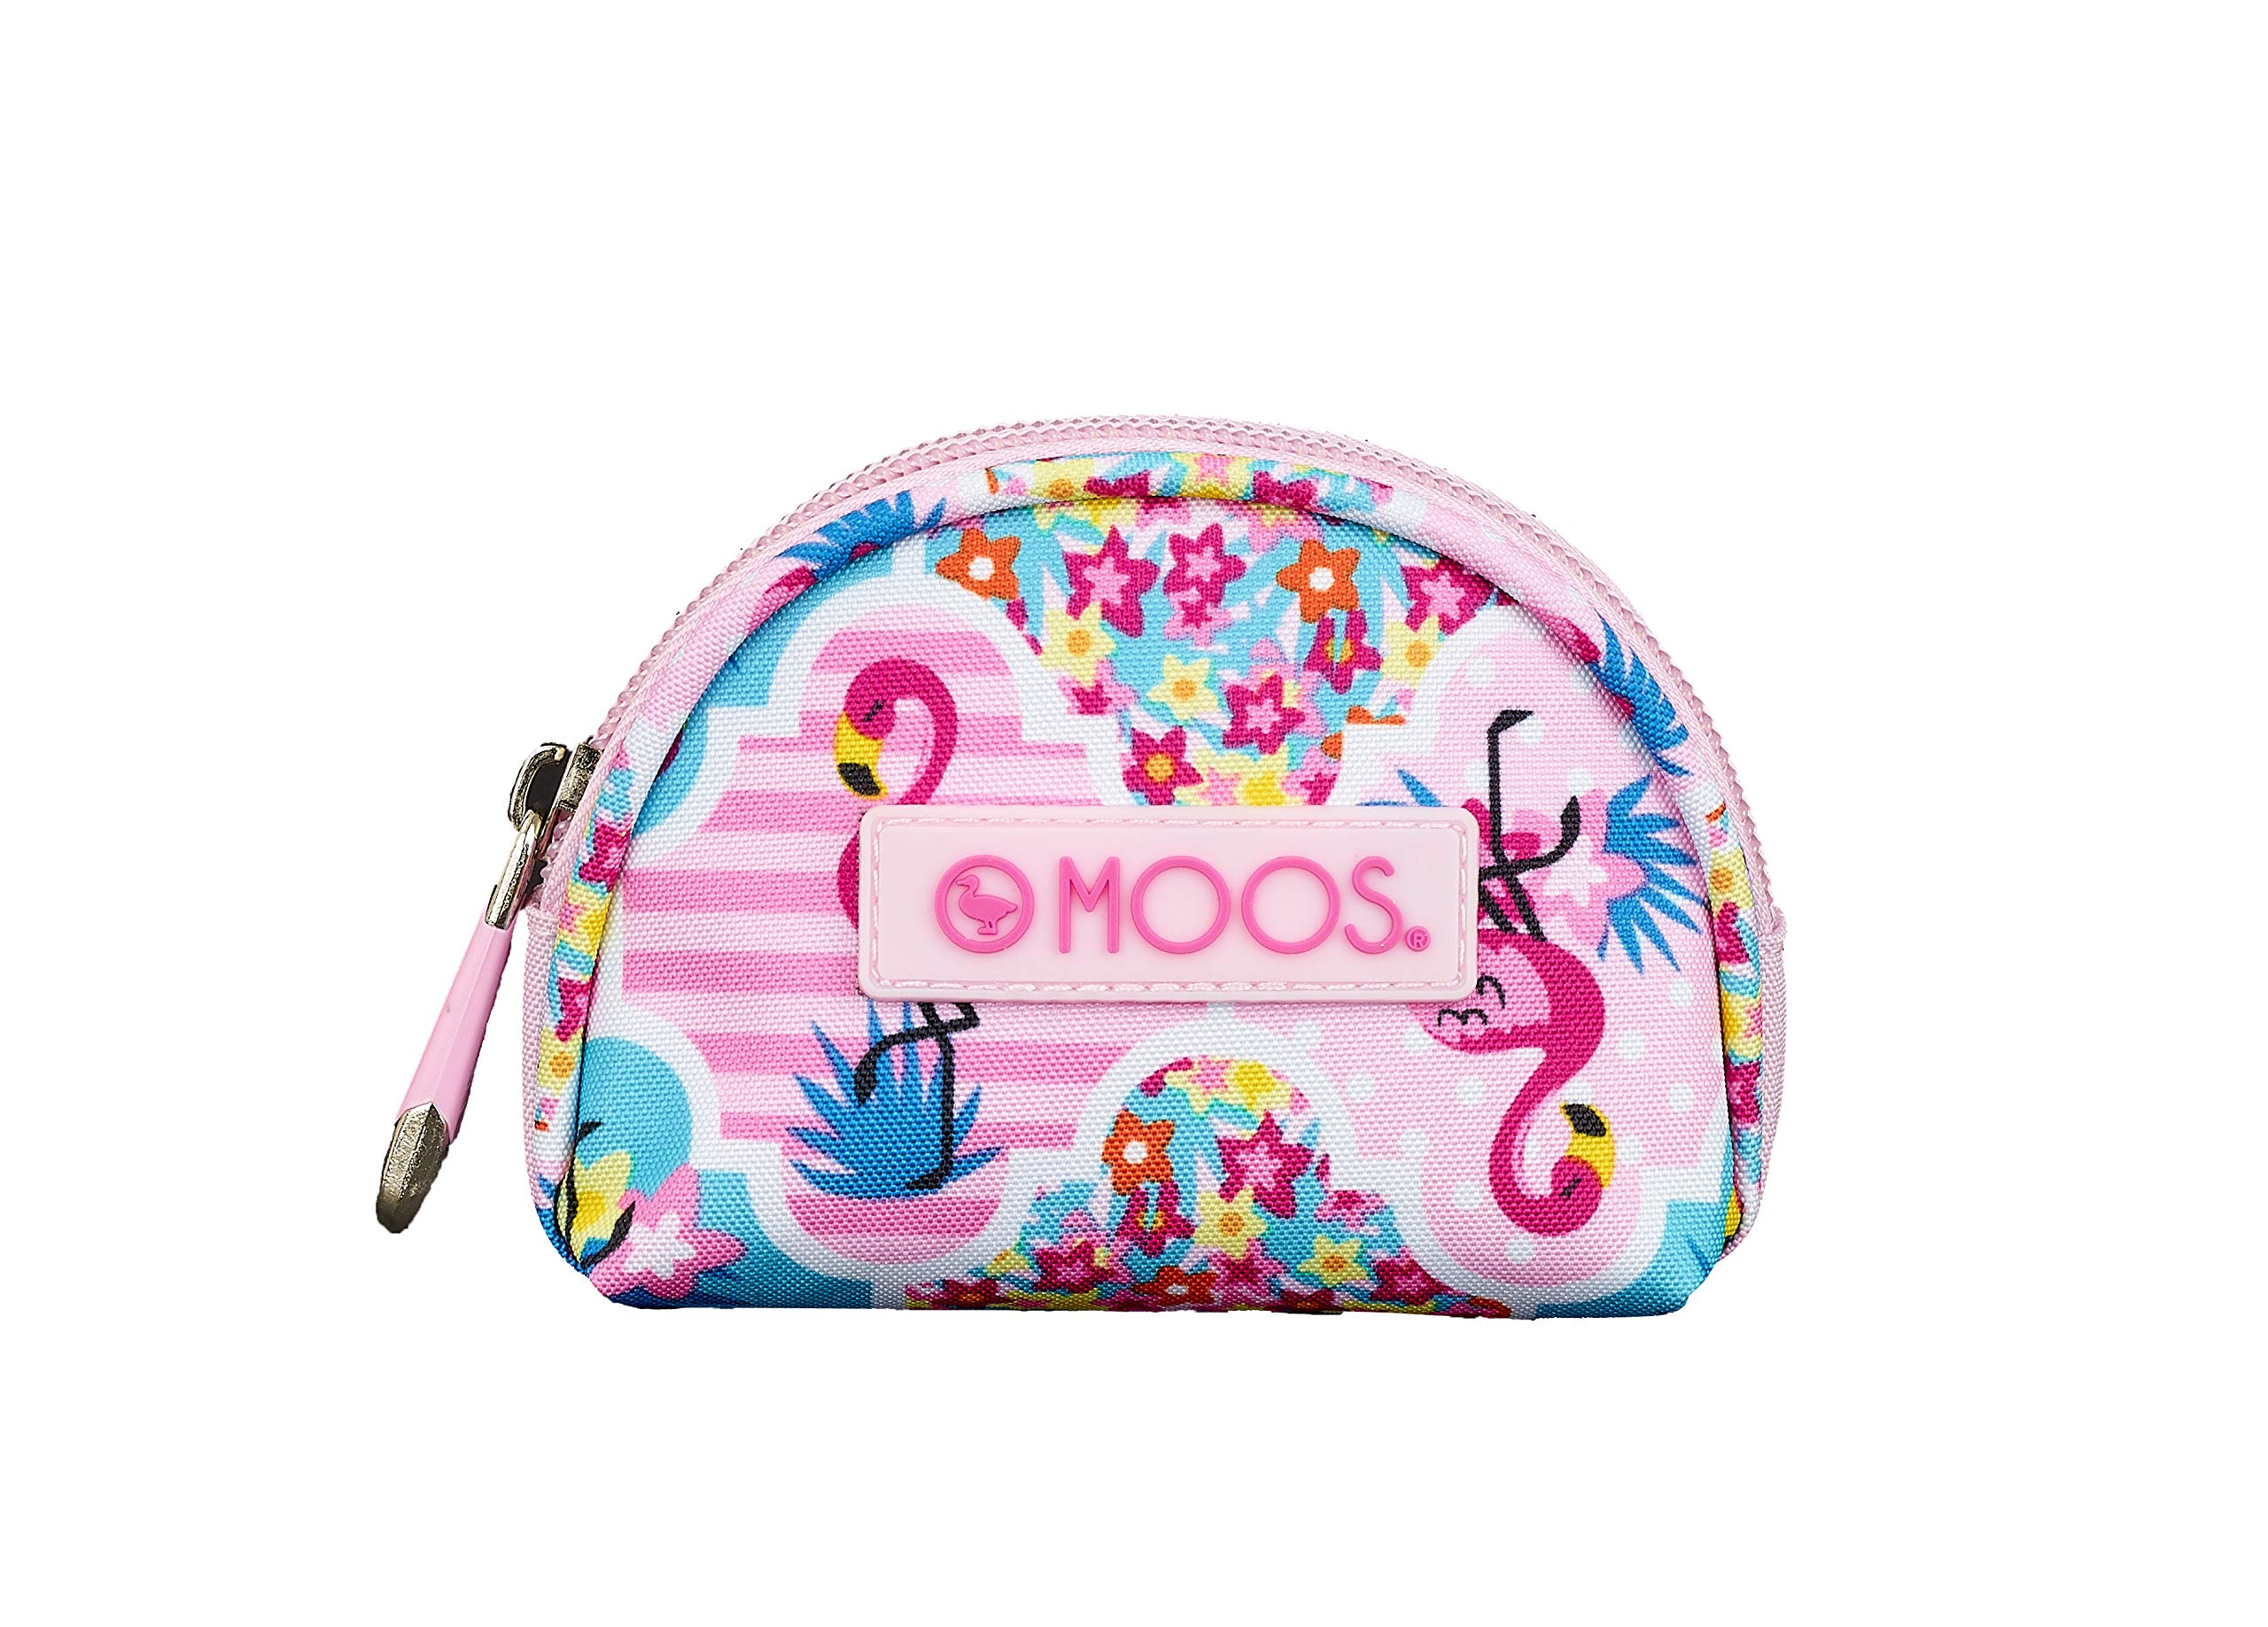 Moos Flamingo Pink Oficial Monedero 95x30x80mm